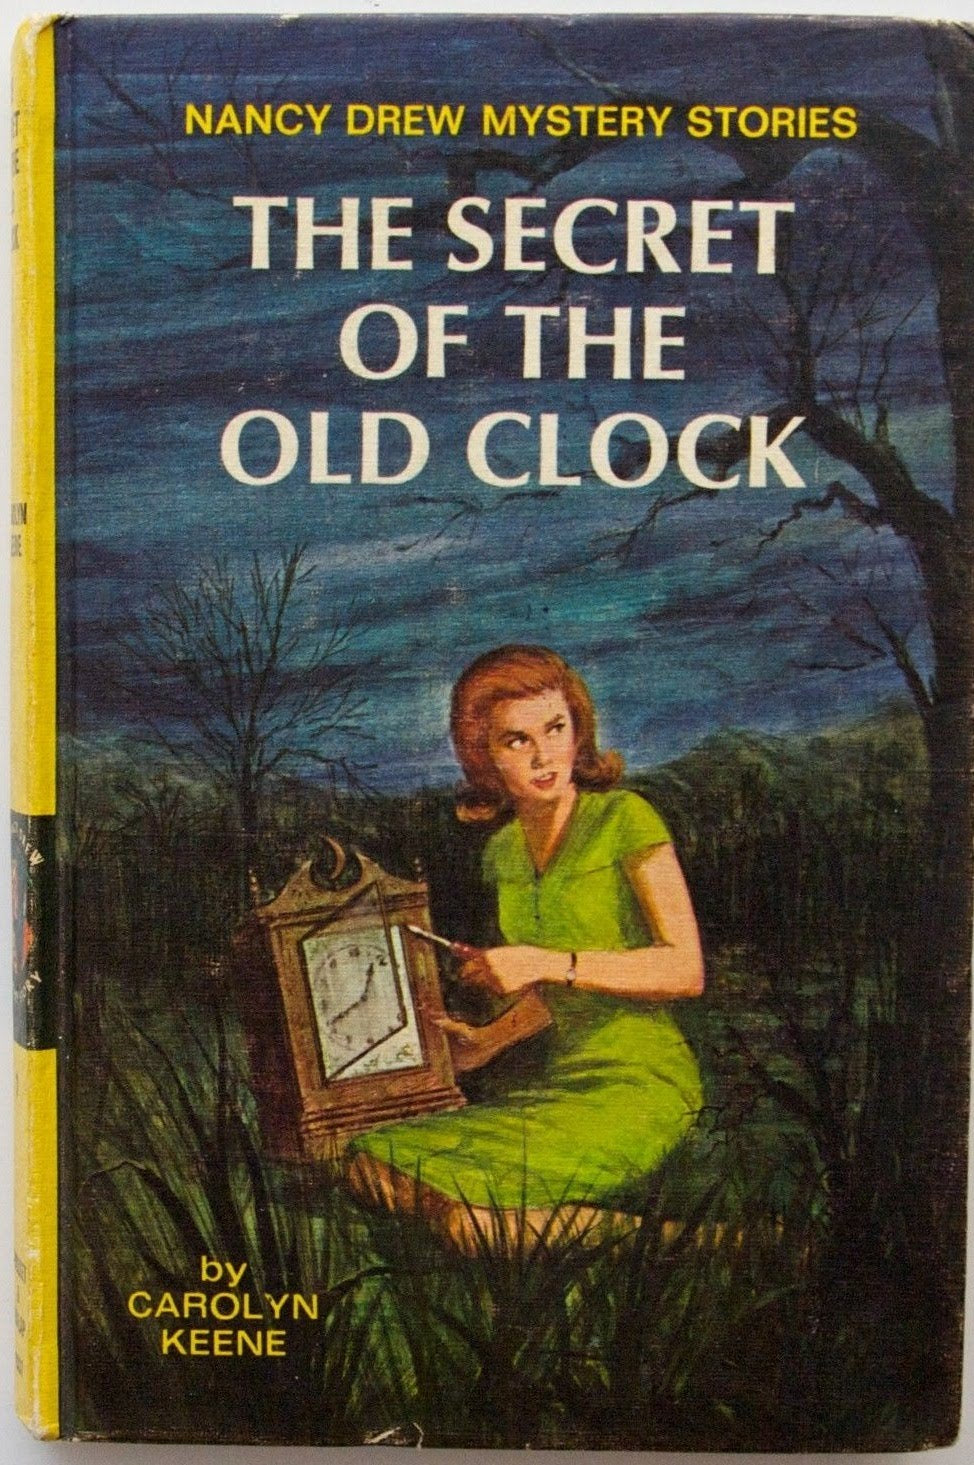 The Secret of the Old Clock - 9.3 stars